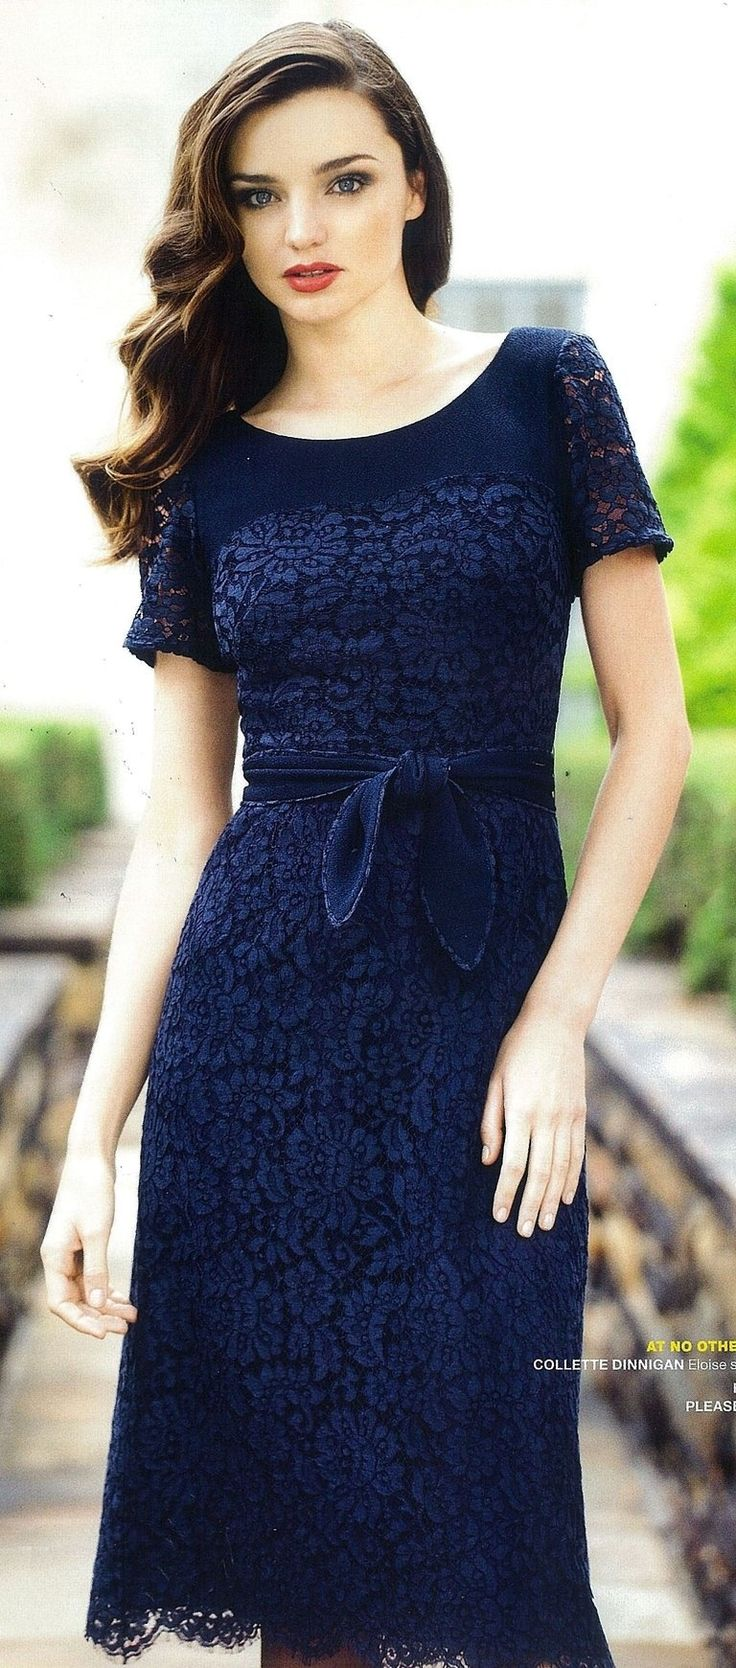 Love this lacy dress:)